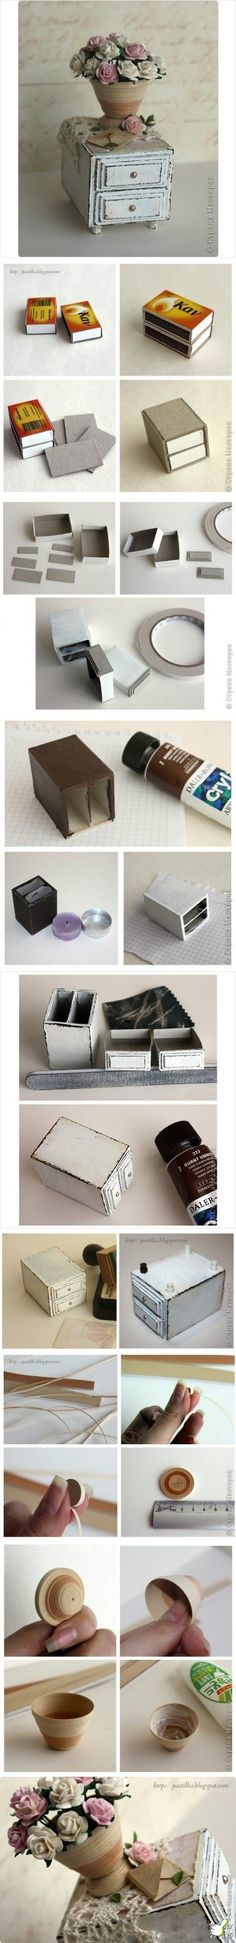 Dollhouse DIY decor